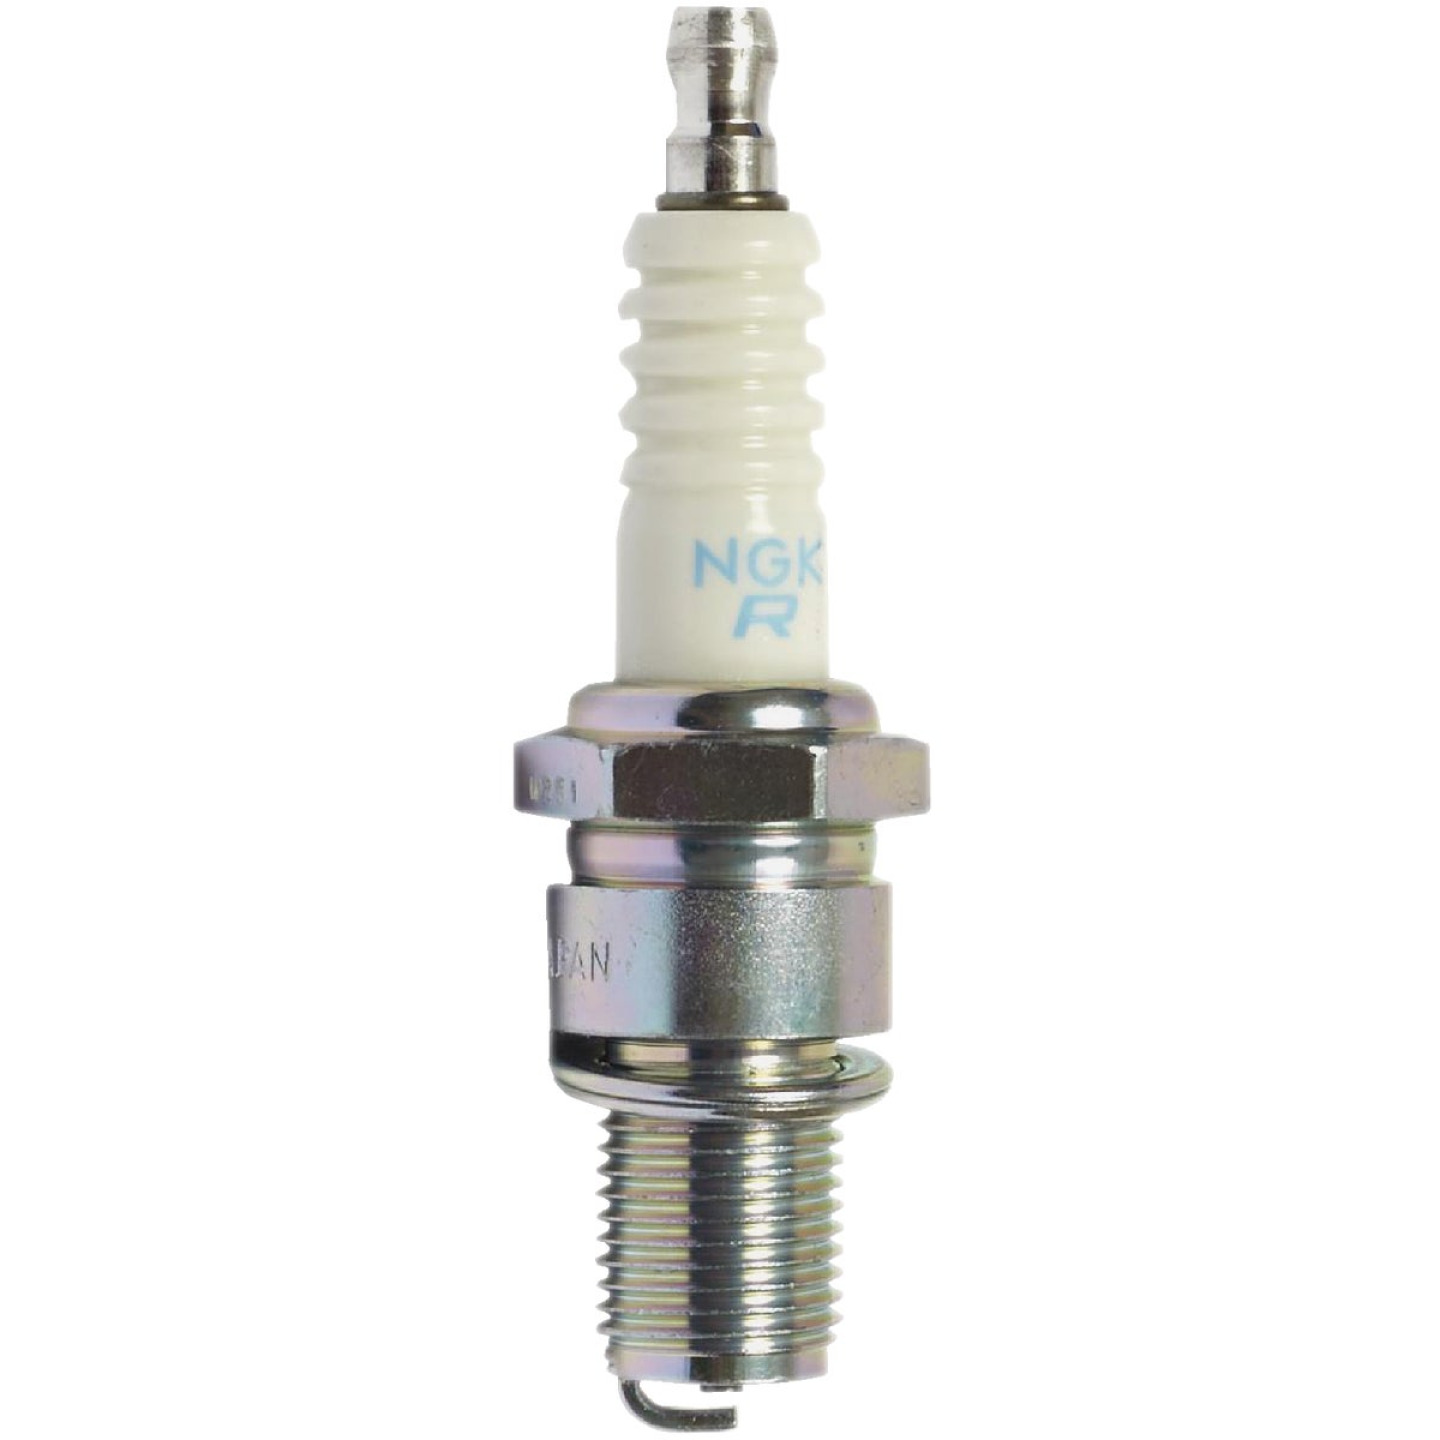 NGK BR9ES BLYB Power Sports Spark Plug for ATV, PWC, Snowmobile Image 1